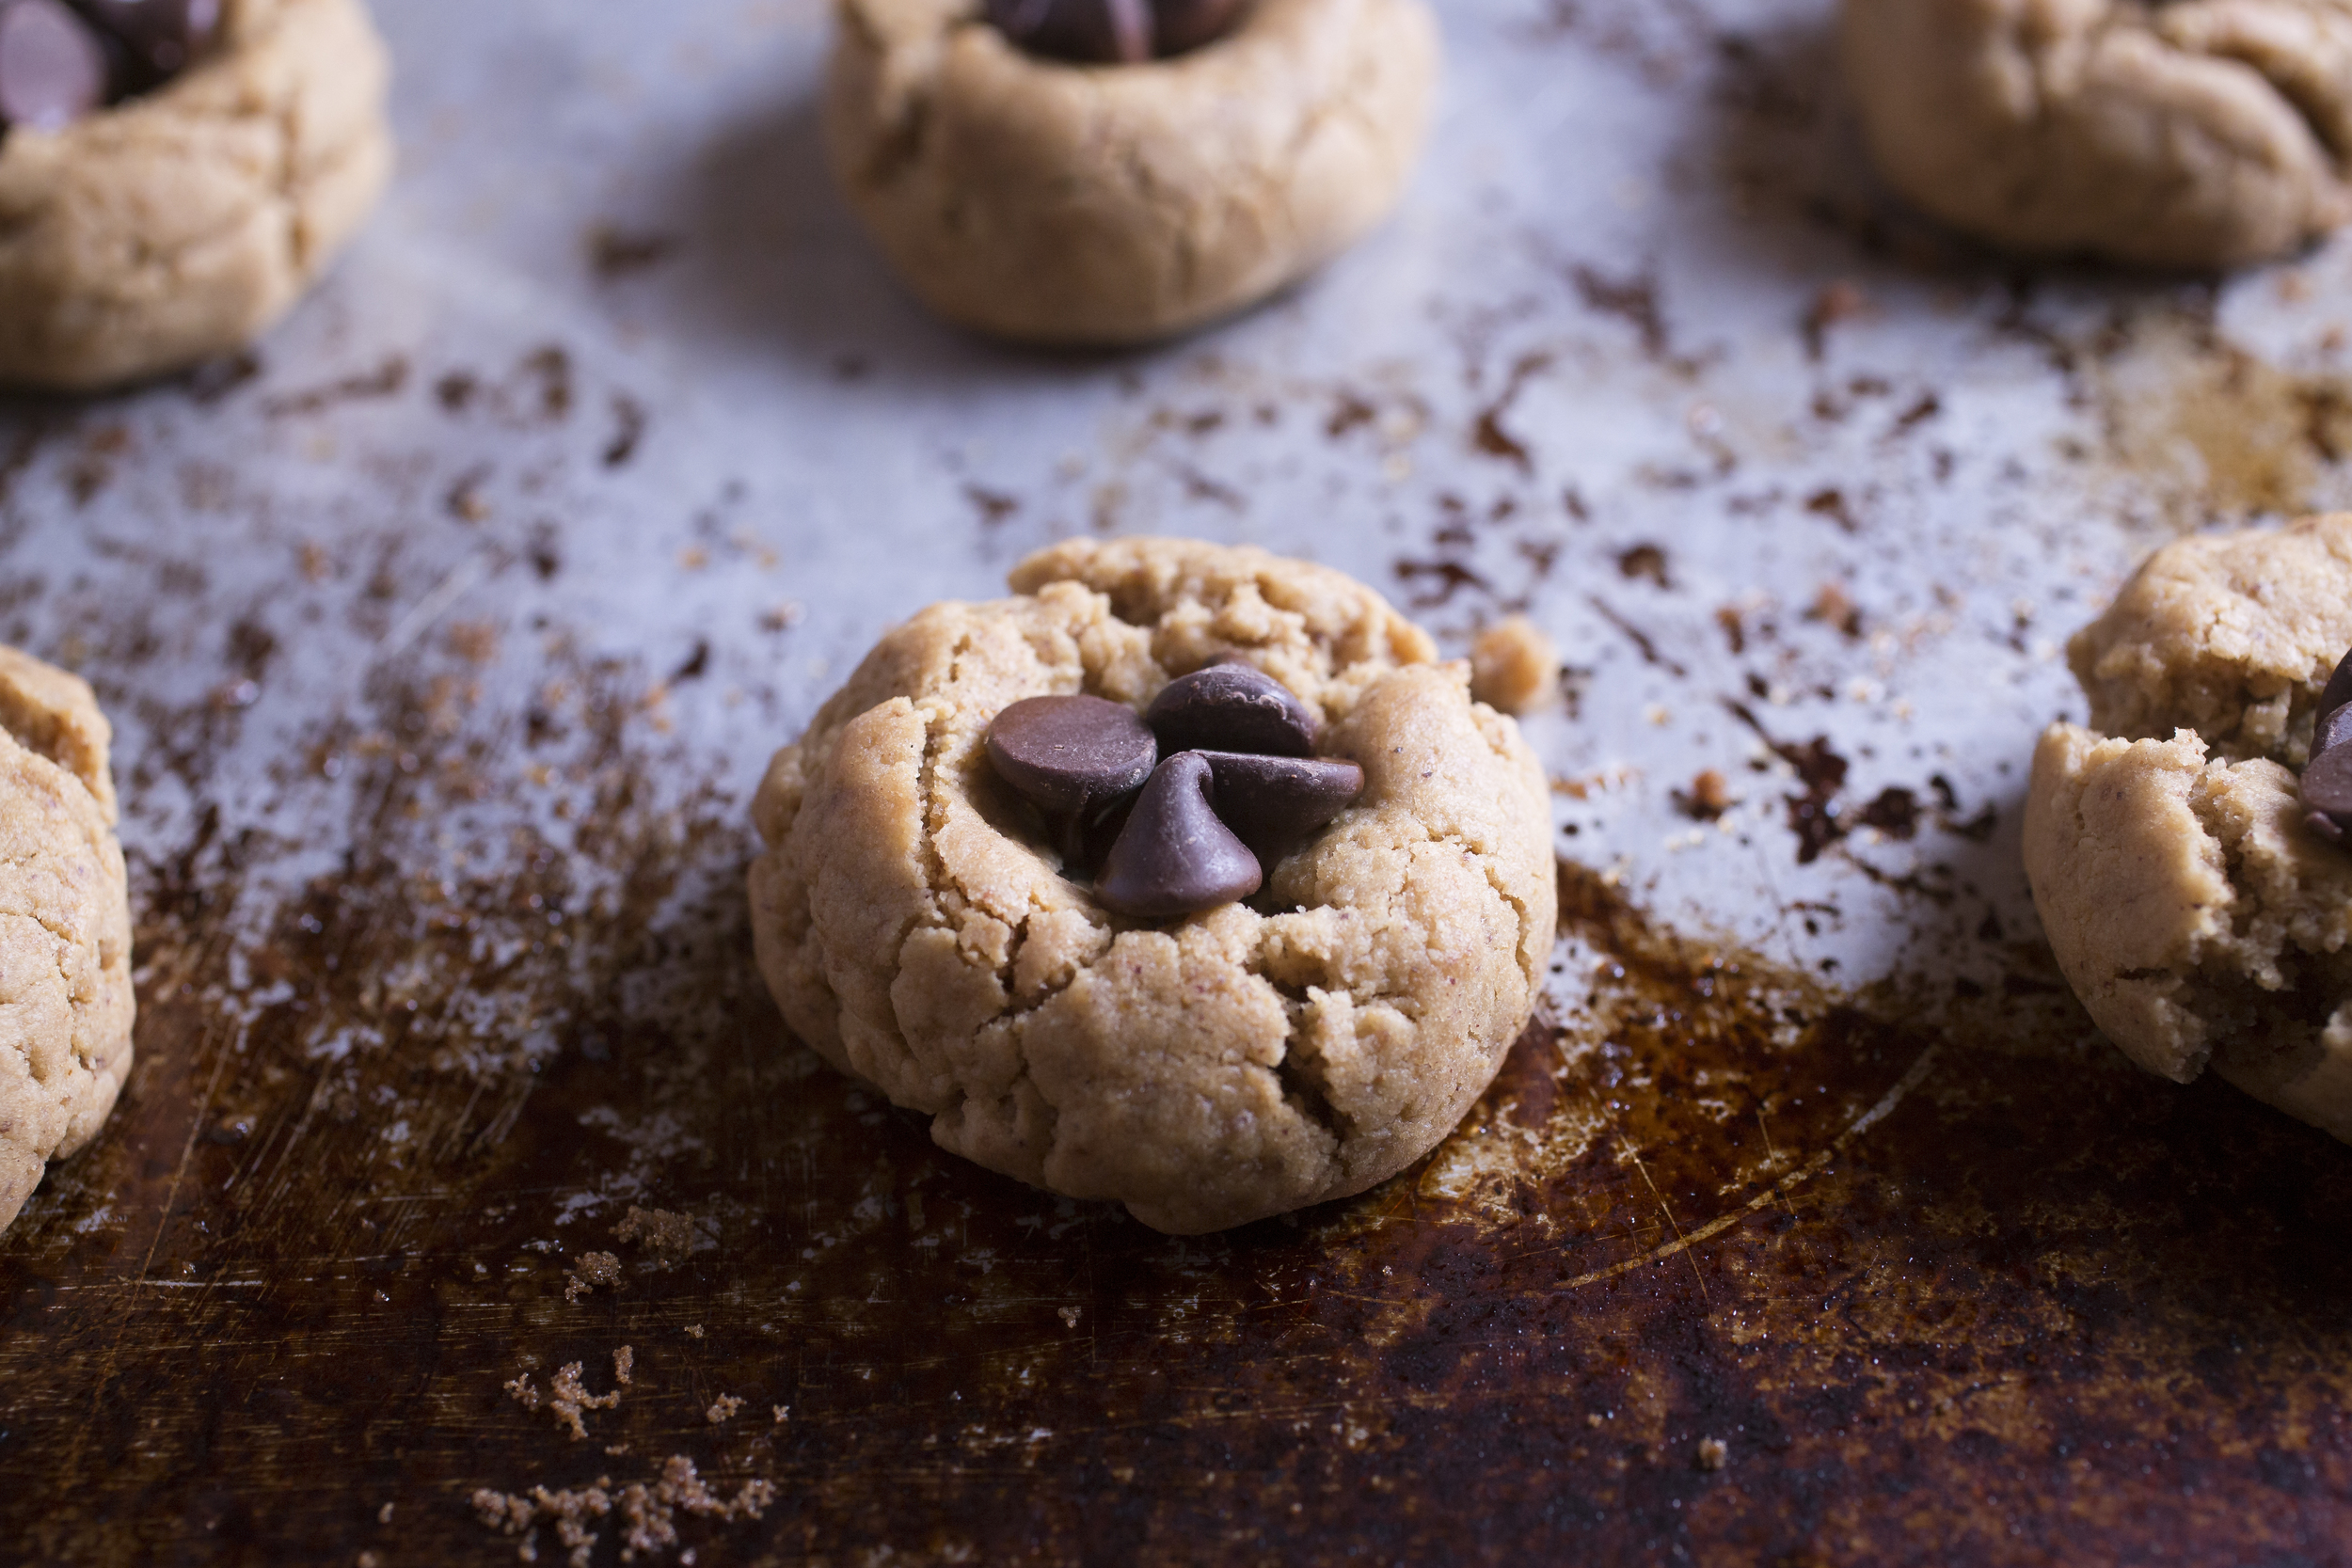 Produce On Parade - Less-Sugar Peanut Butter Blossoms  - A personal holiday favorite, I've finally veganized this scrumptious little cookie. Vegan chocolate chips replace Hershey kisses and are enveloped by a soft and pillowy peanut butter cookie. I've made these lower-sugar using erythritol, but feel free to use regular sugar if you wish. They're easy, done in a flash, and perfect for cookie exchanges!